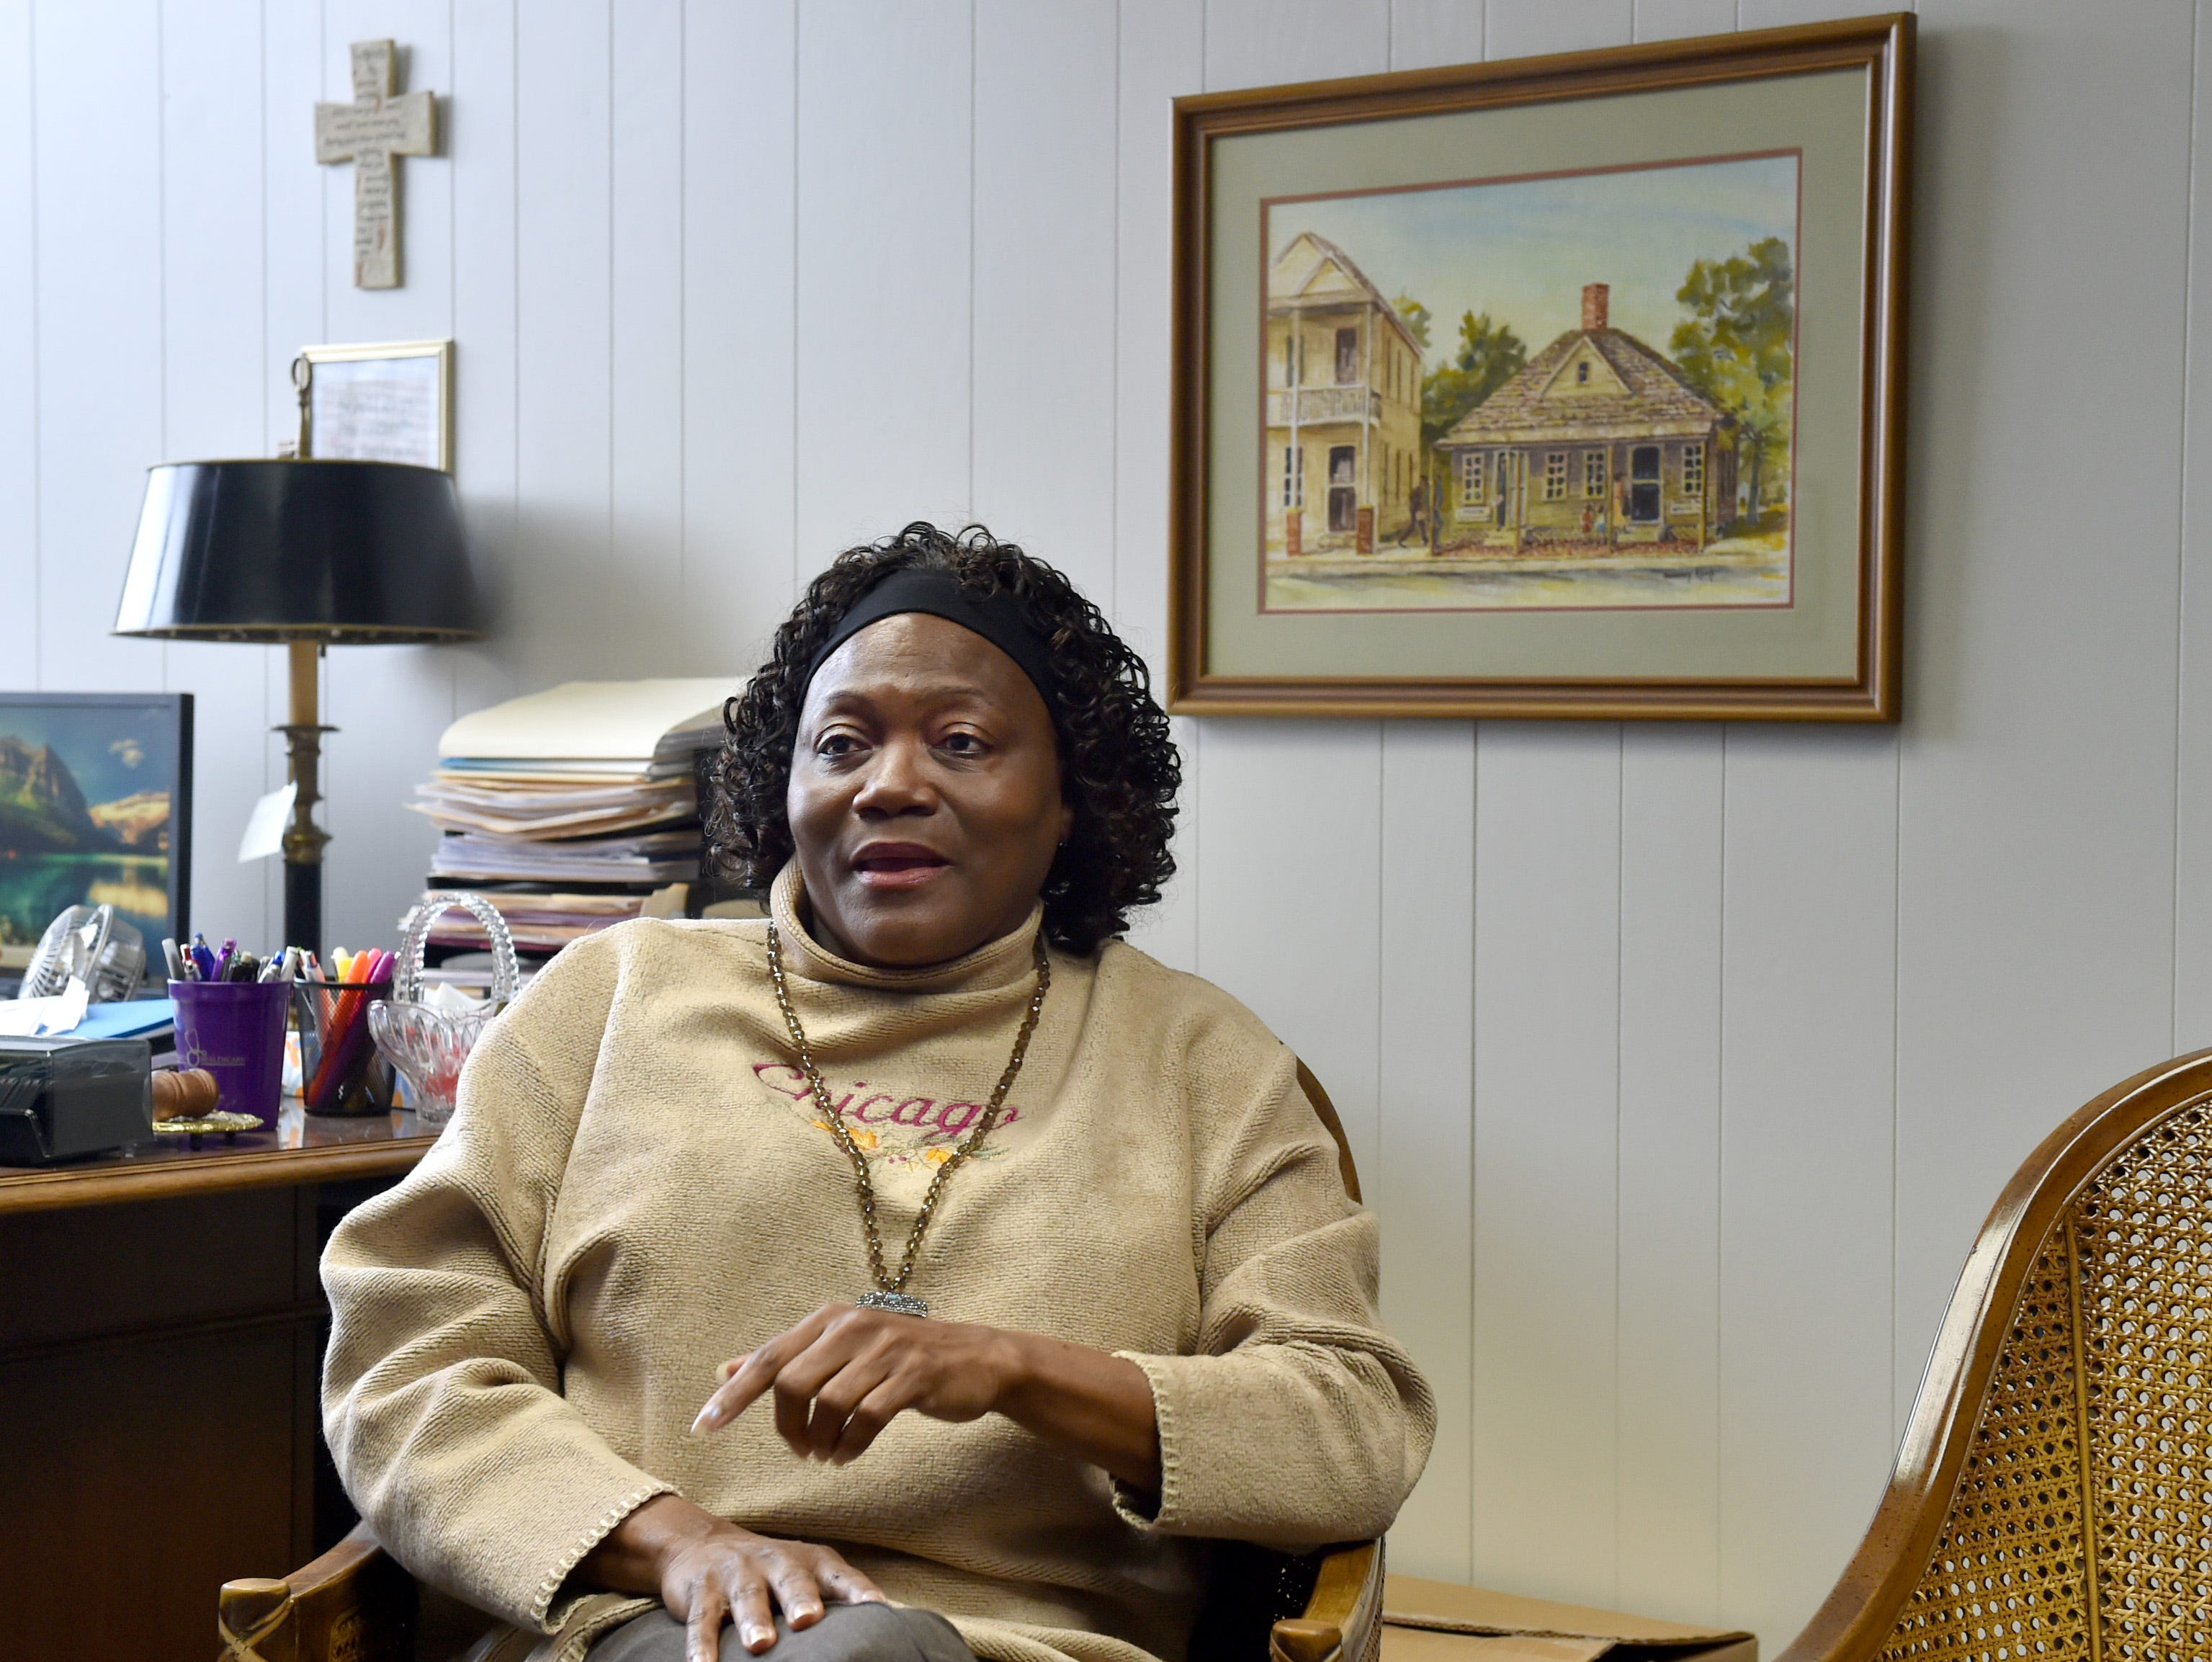 """""""It's just a memory you never forget .... because it was a nightmare,"""" said Shirley Sandifer, who is now the mayor of Hazlehurst, a town of about 3,800 residents a half hour south of Jackson. Monday, Jan. 14, 2019"""